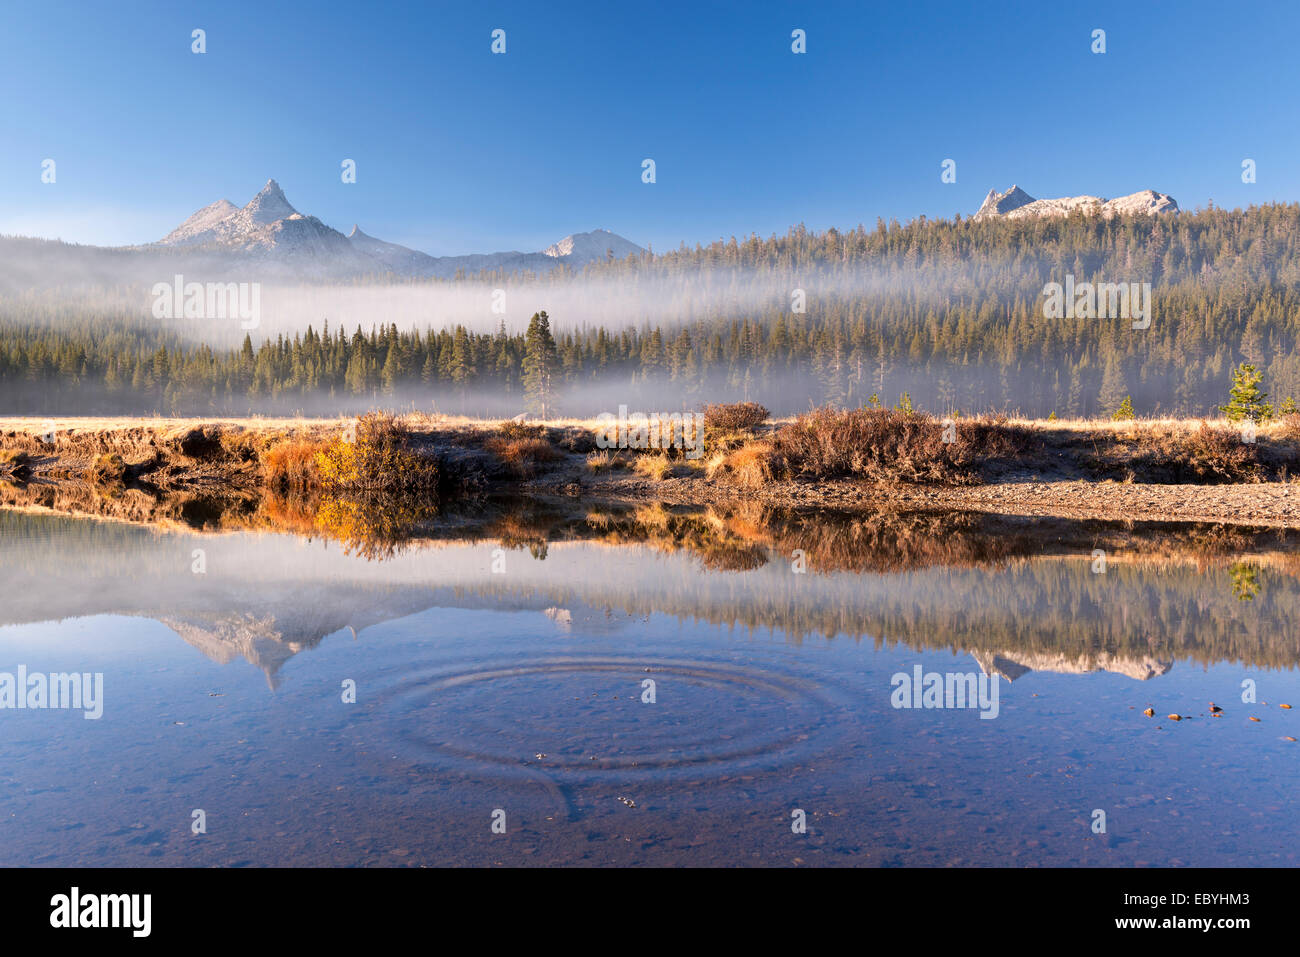 Unicorn and Cathedral Peaks reflected in the Tuolumne River, Tuolumne Meadows, Yosemite, California, USA. Autumn - Stock Image